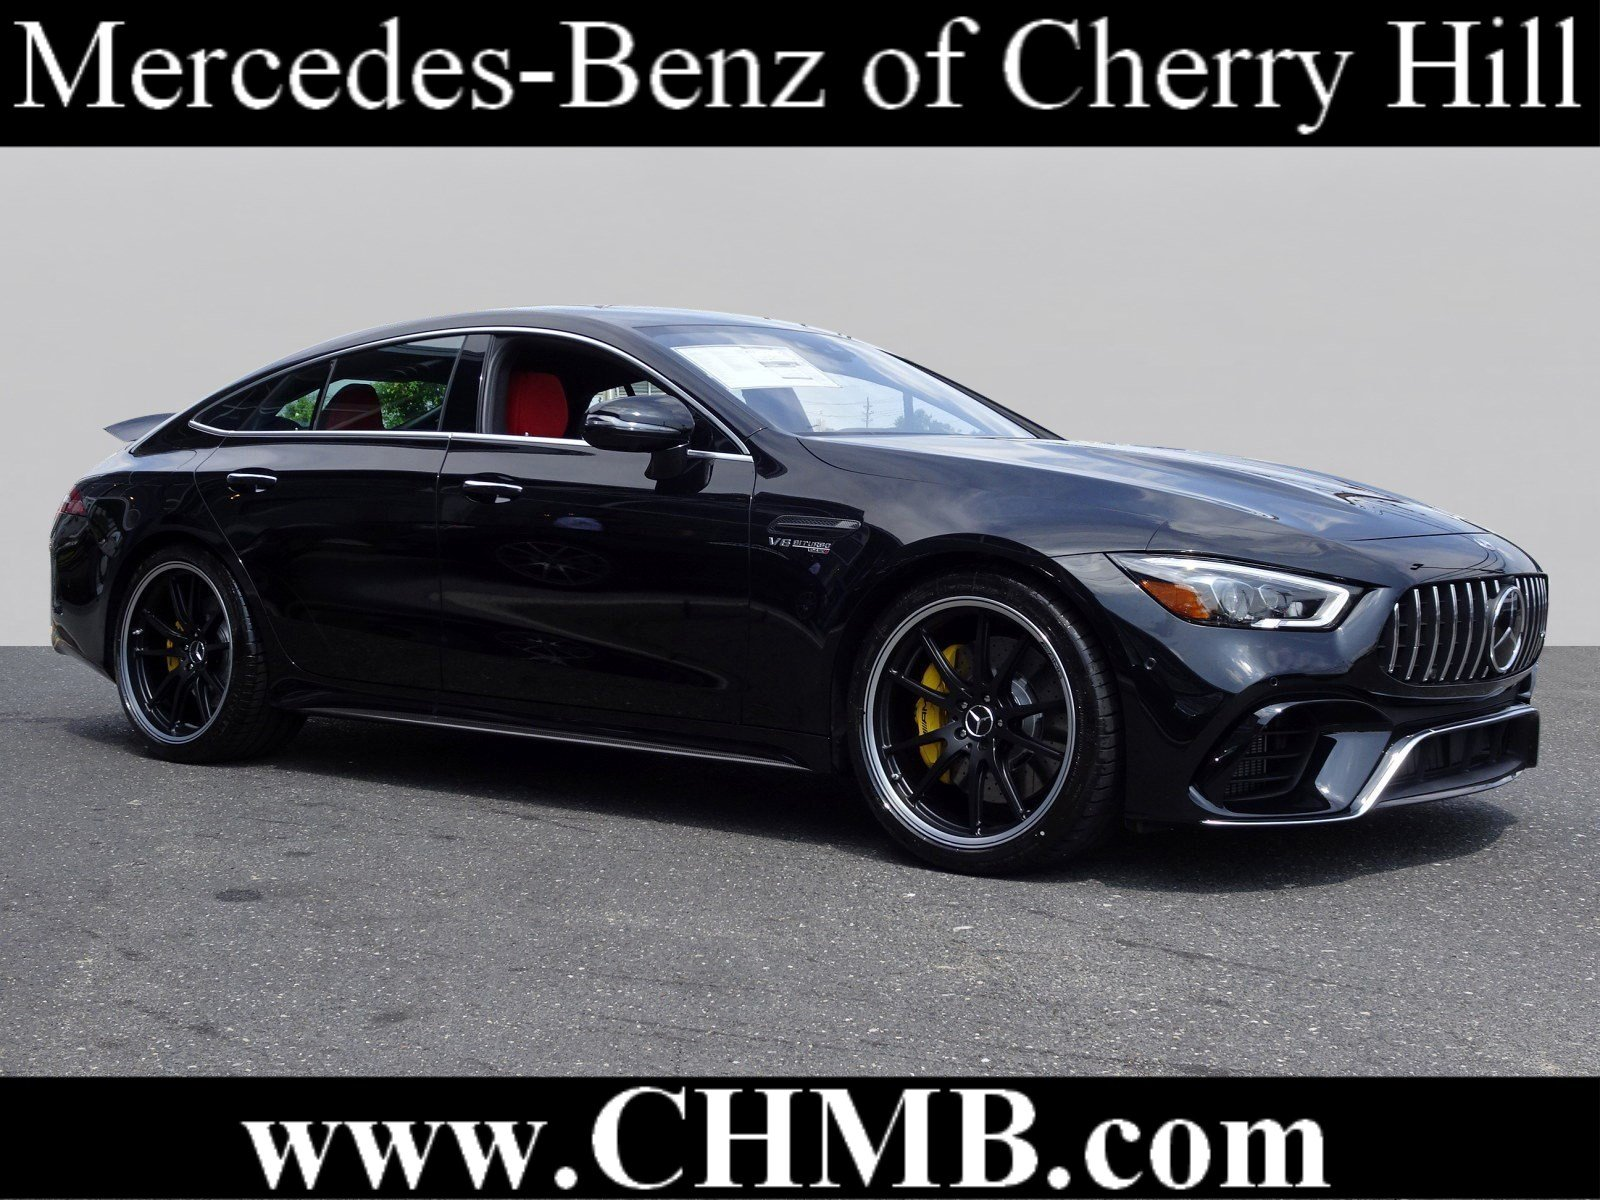 New 2019 Mercedes Benz GT AMG GT 63 S 4MATIC